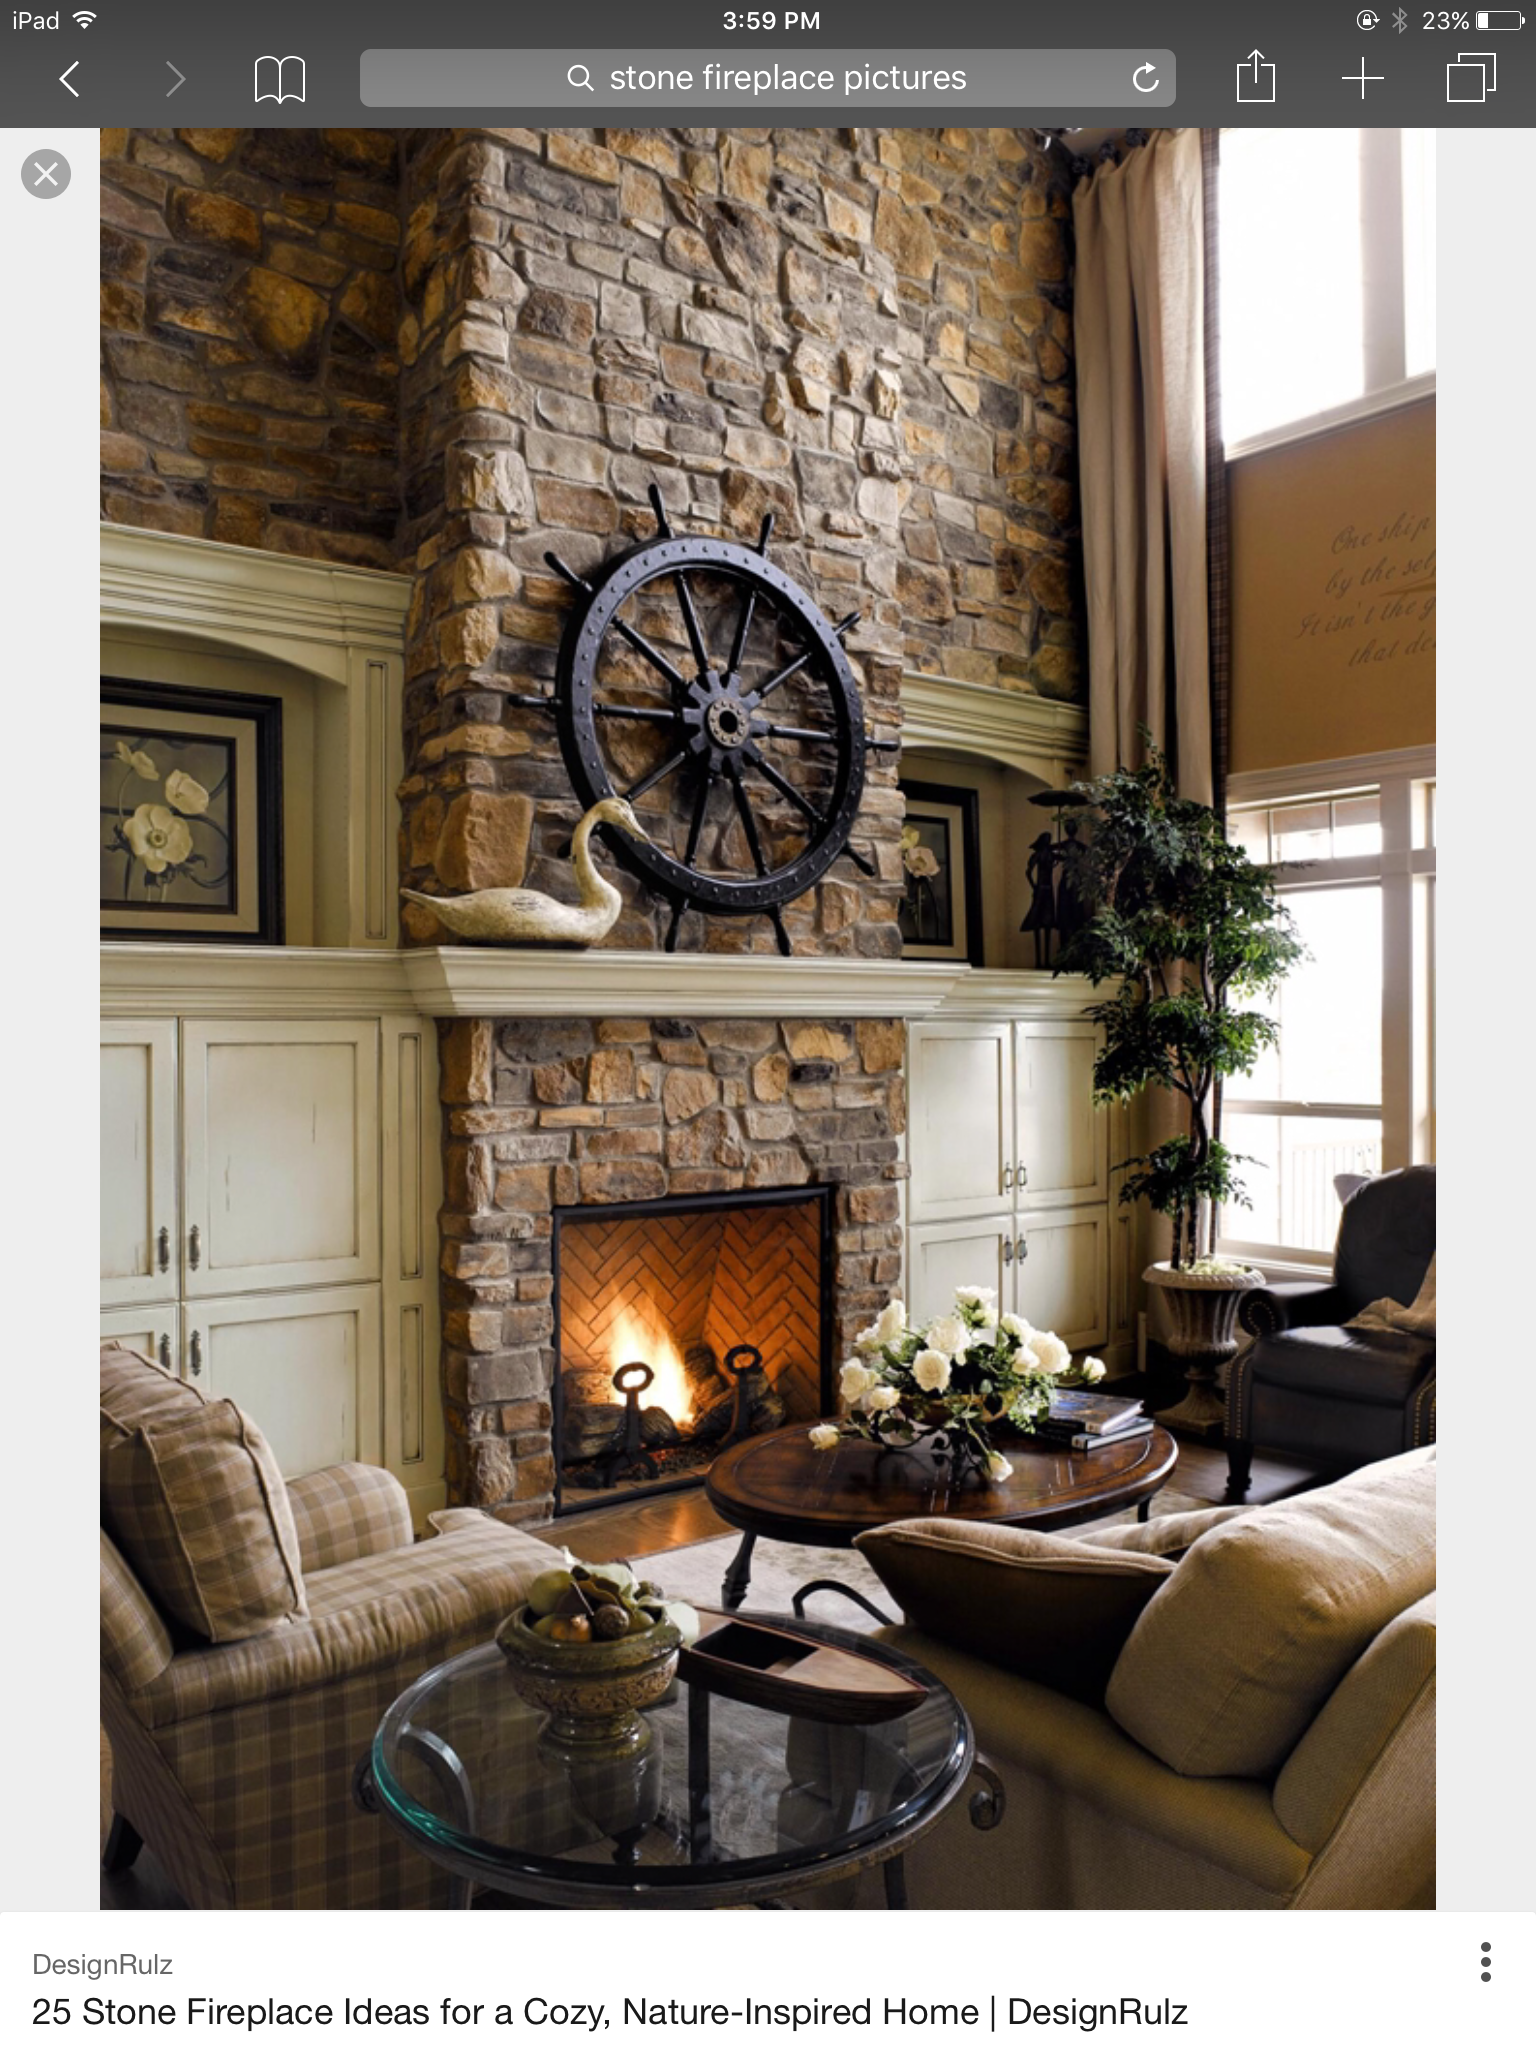 Eldorado Stone - Inspiration for Stone Veneer Fireplaces, Stone Facades,  Stone Interiors and